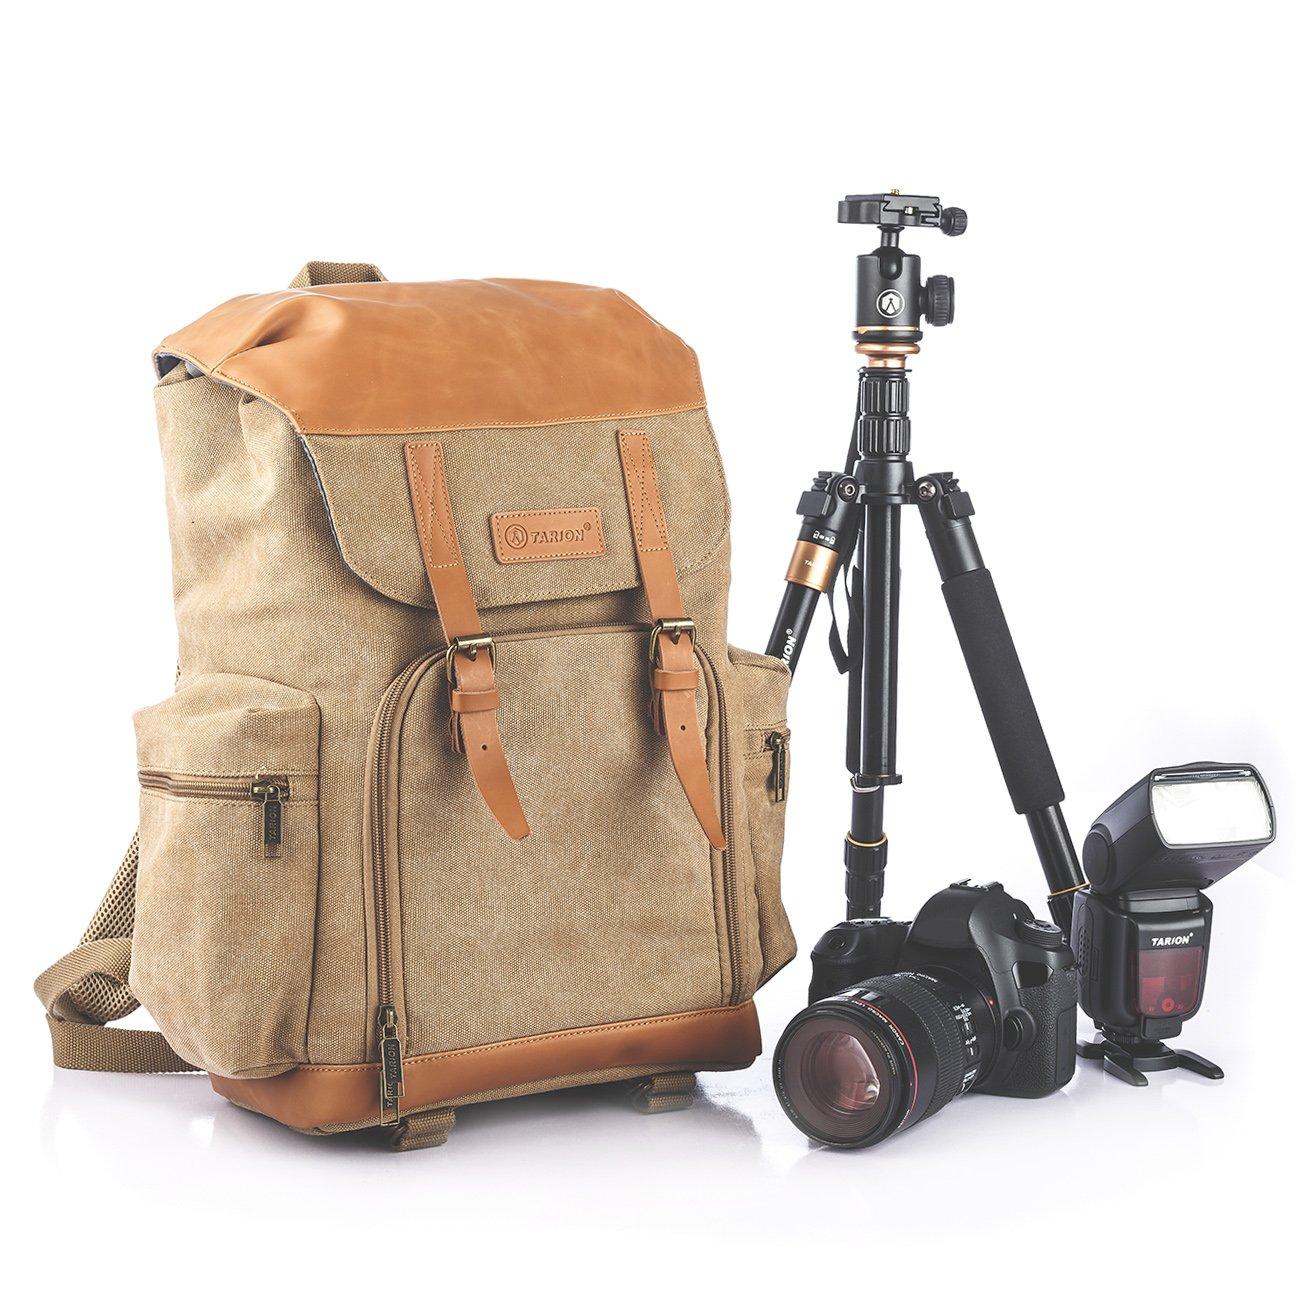 TARION M-02 Canvas Camera Backpack Water-Repellent Camera Bag for DSLR SLR Mirrorless Cameras & Accessories - Colour Khaki by TARION